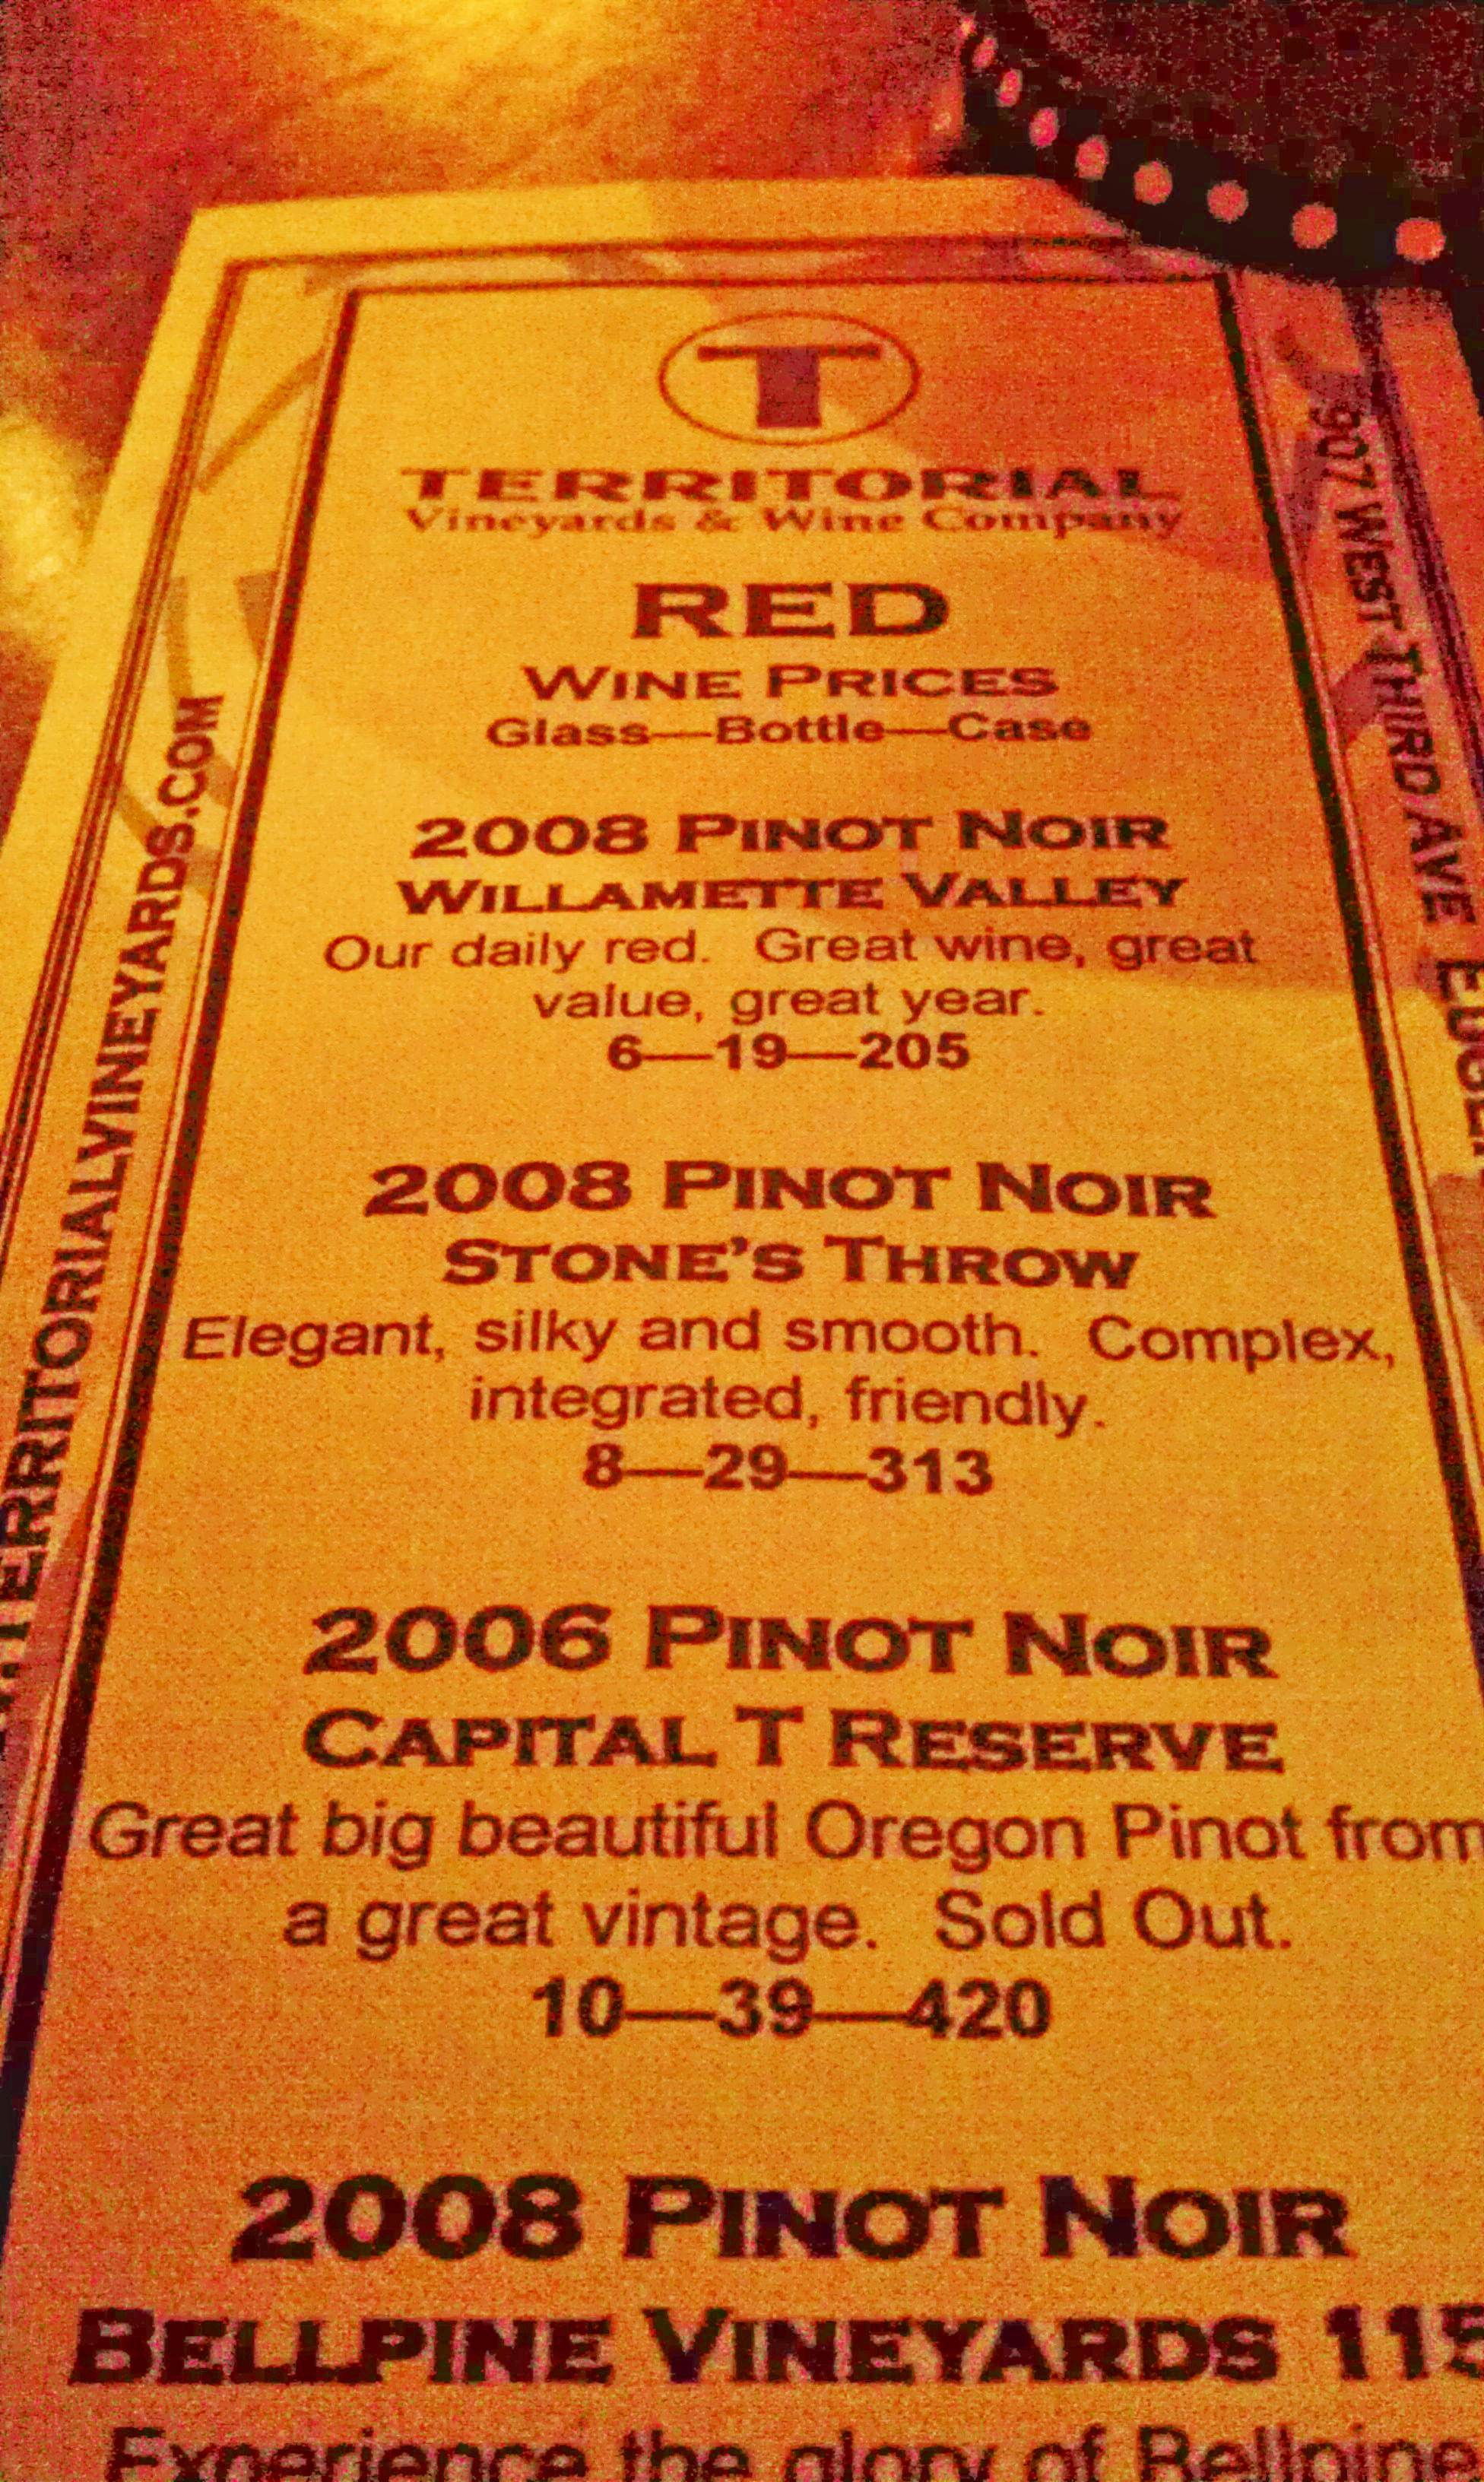 Touting Territorial's Tantalizing Pinot Noirs